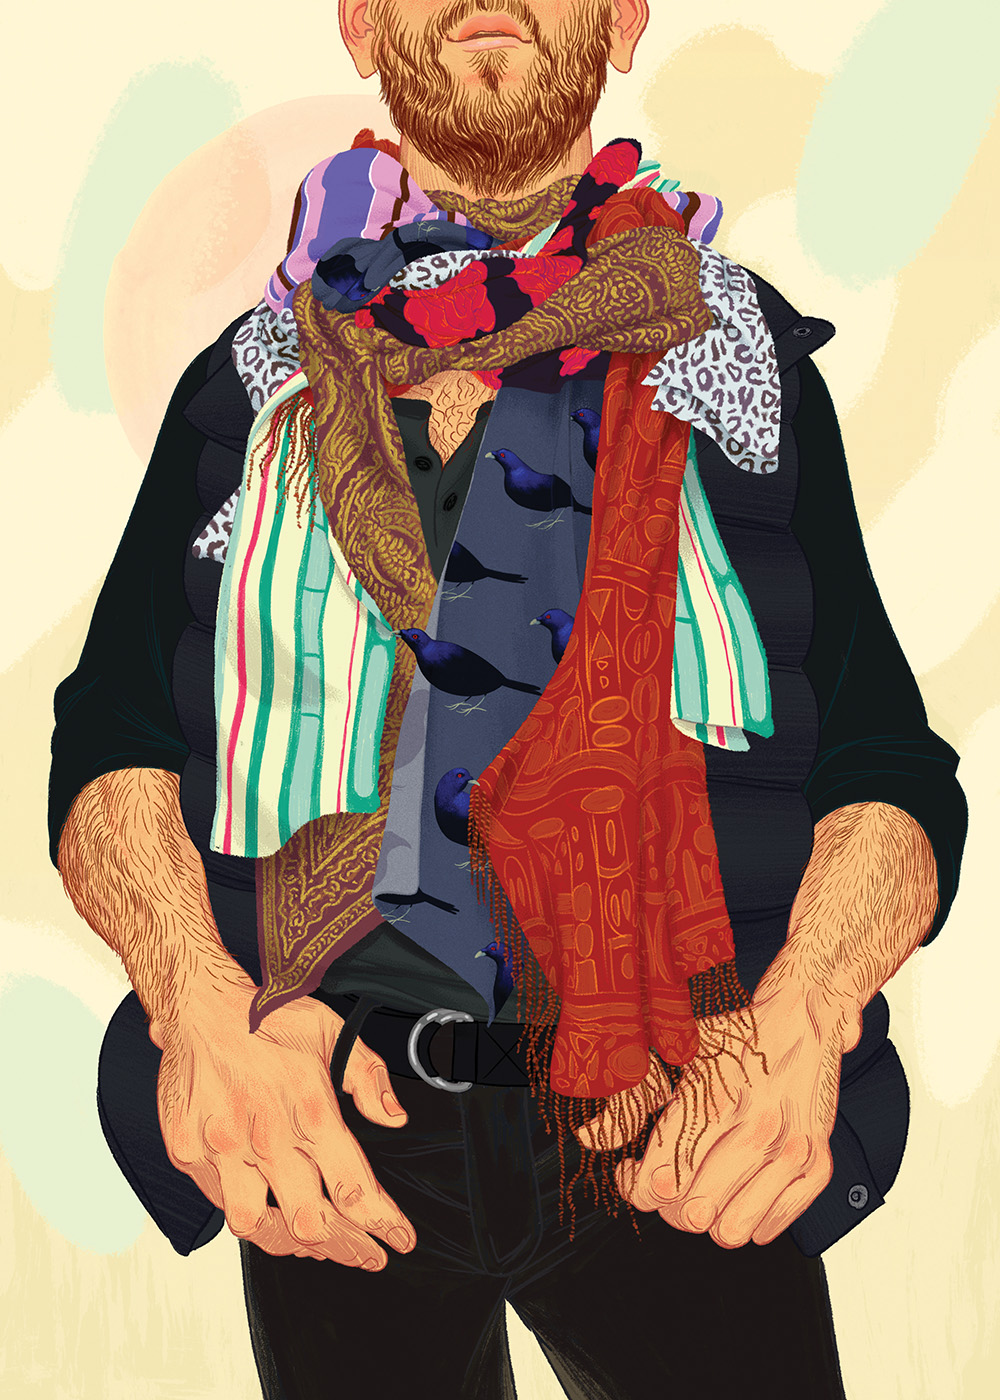 """Dandy Bro"" by Michael Marsicano"